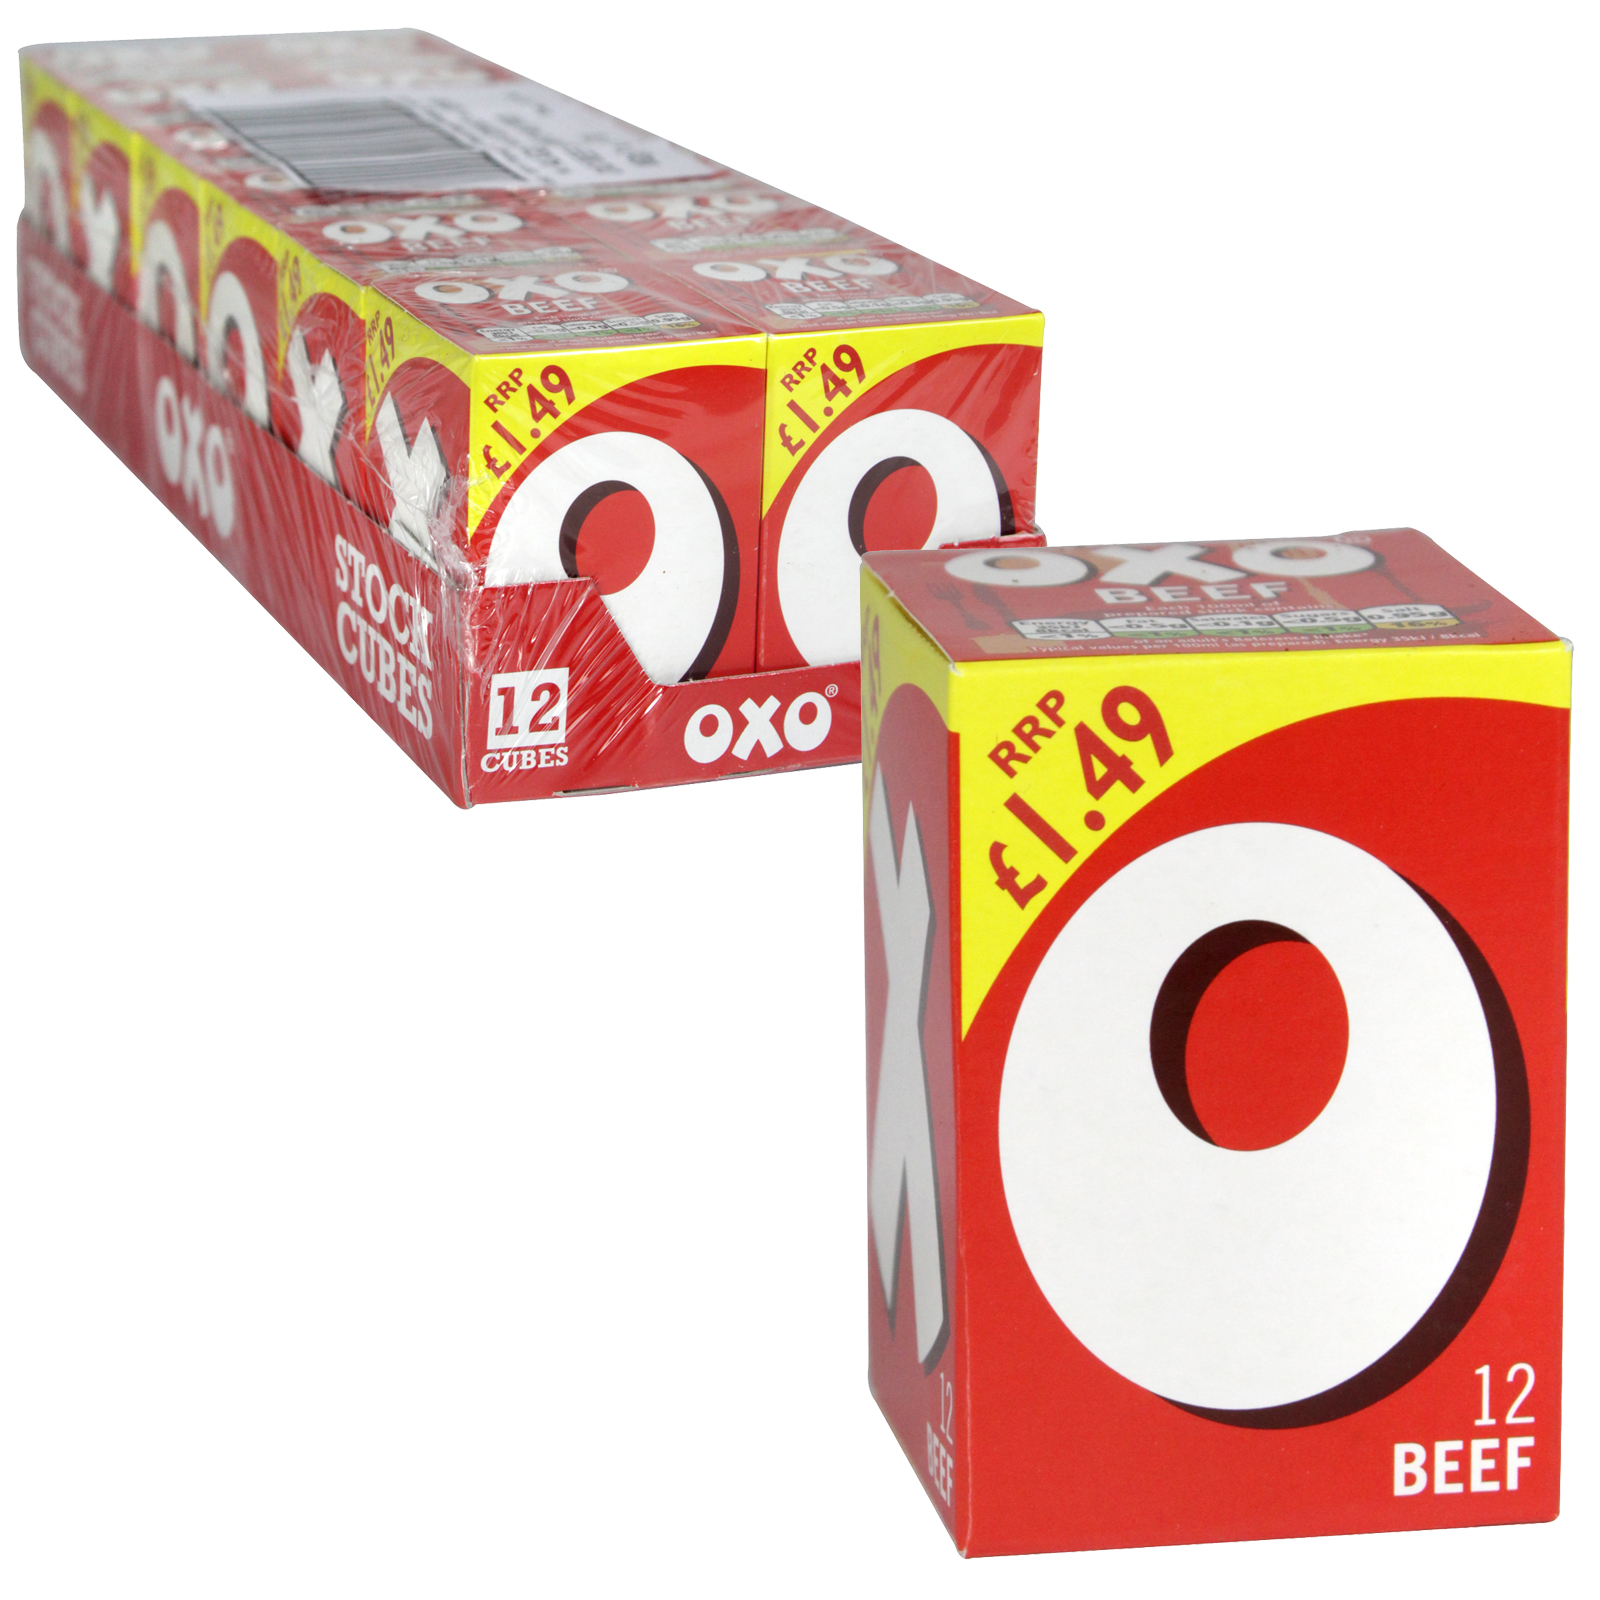 OXO CUBES 12S BEEF PM ?1.69 X12